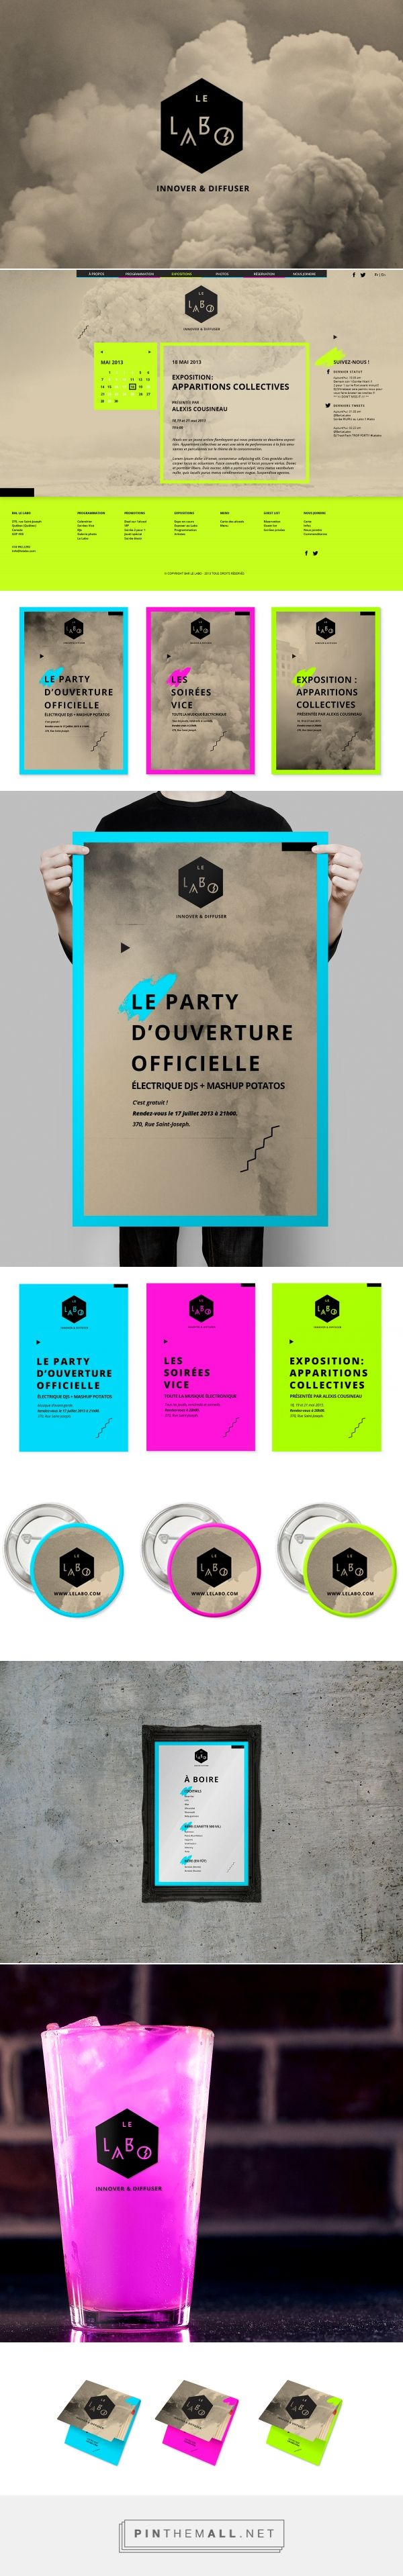 Le Labo Bar Branding by Maryline Vachon | Fivestar Branding Agency – Design and Branding Agency & Curated Inspiration Gallery